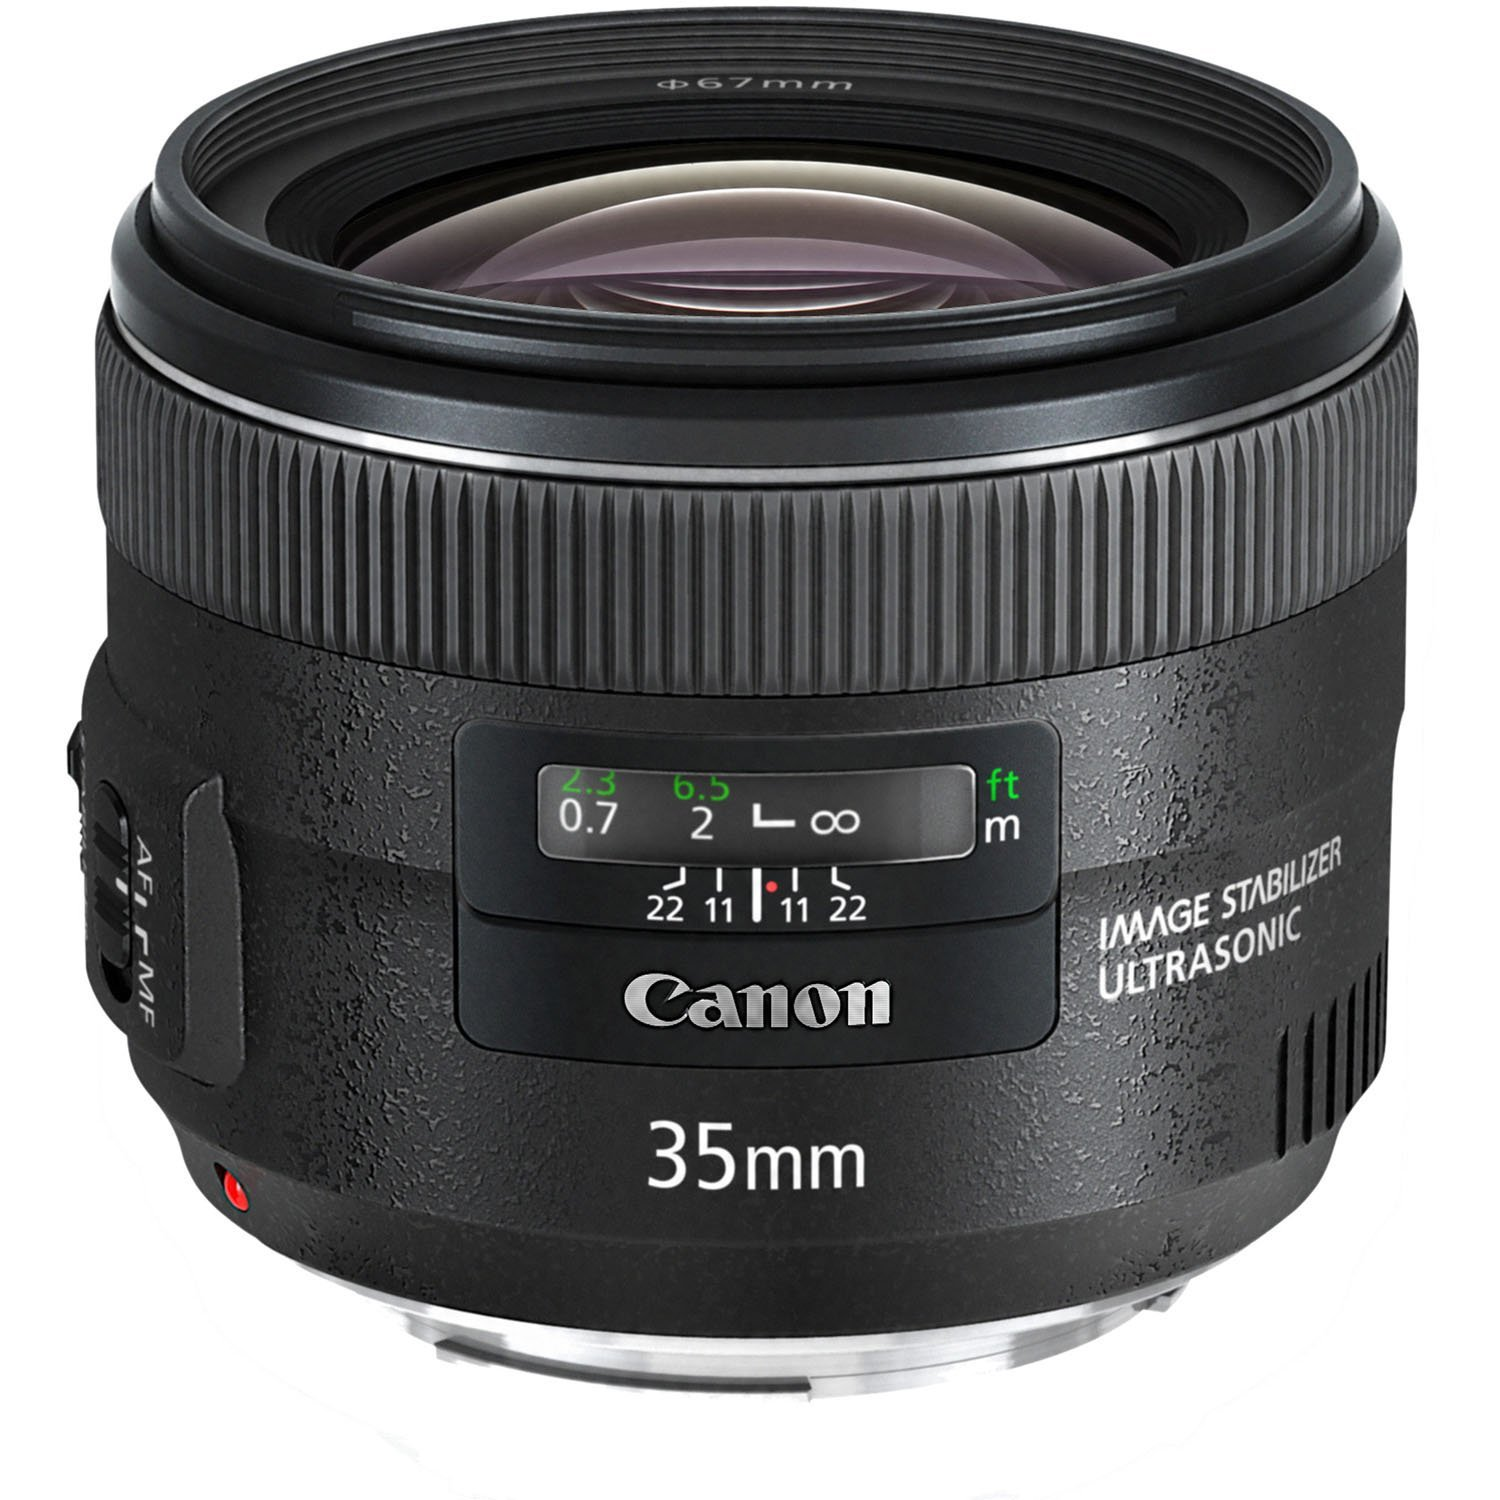 Canon EF 35mm f:2 IS USM Wide-Angle Lens high end dslr lens